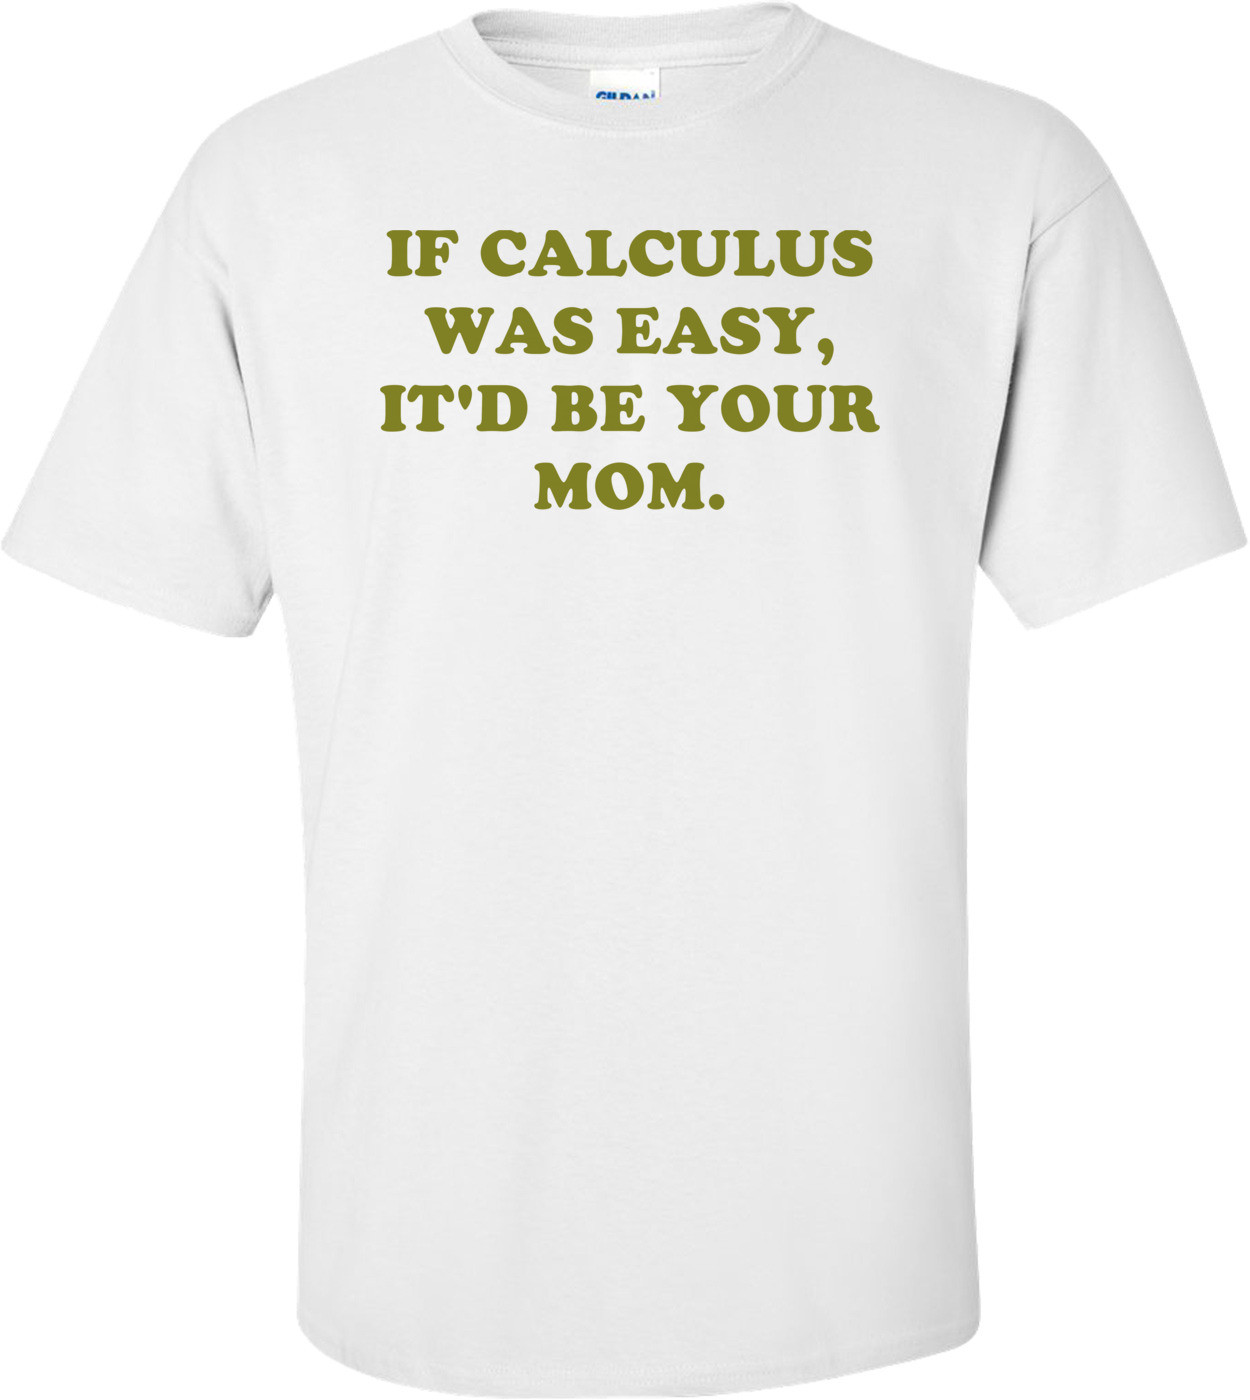 IF CALCULUS WAS EASY, IT'D BE YOUR MOM. Shirt